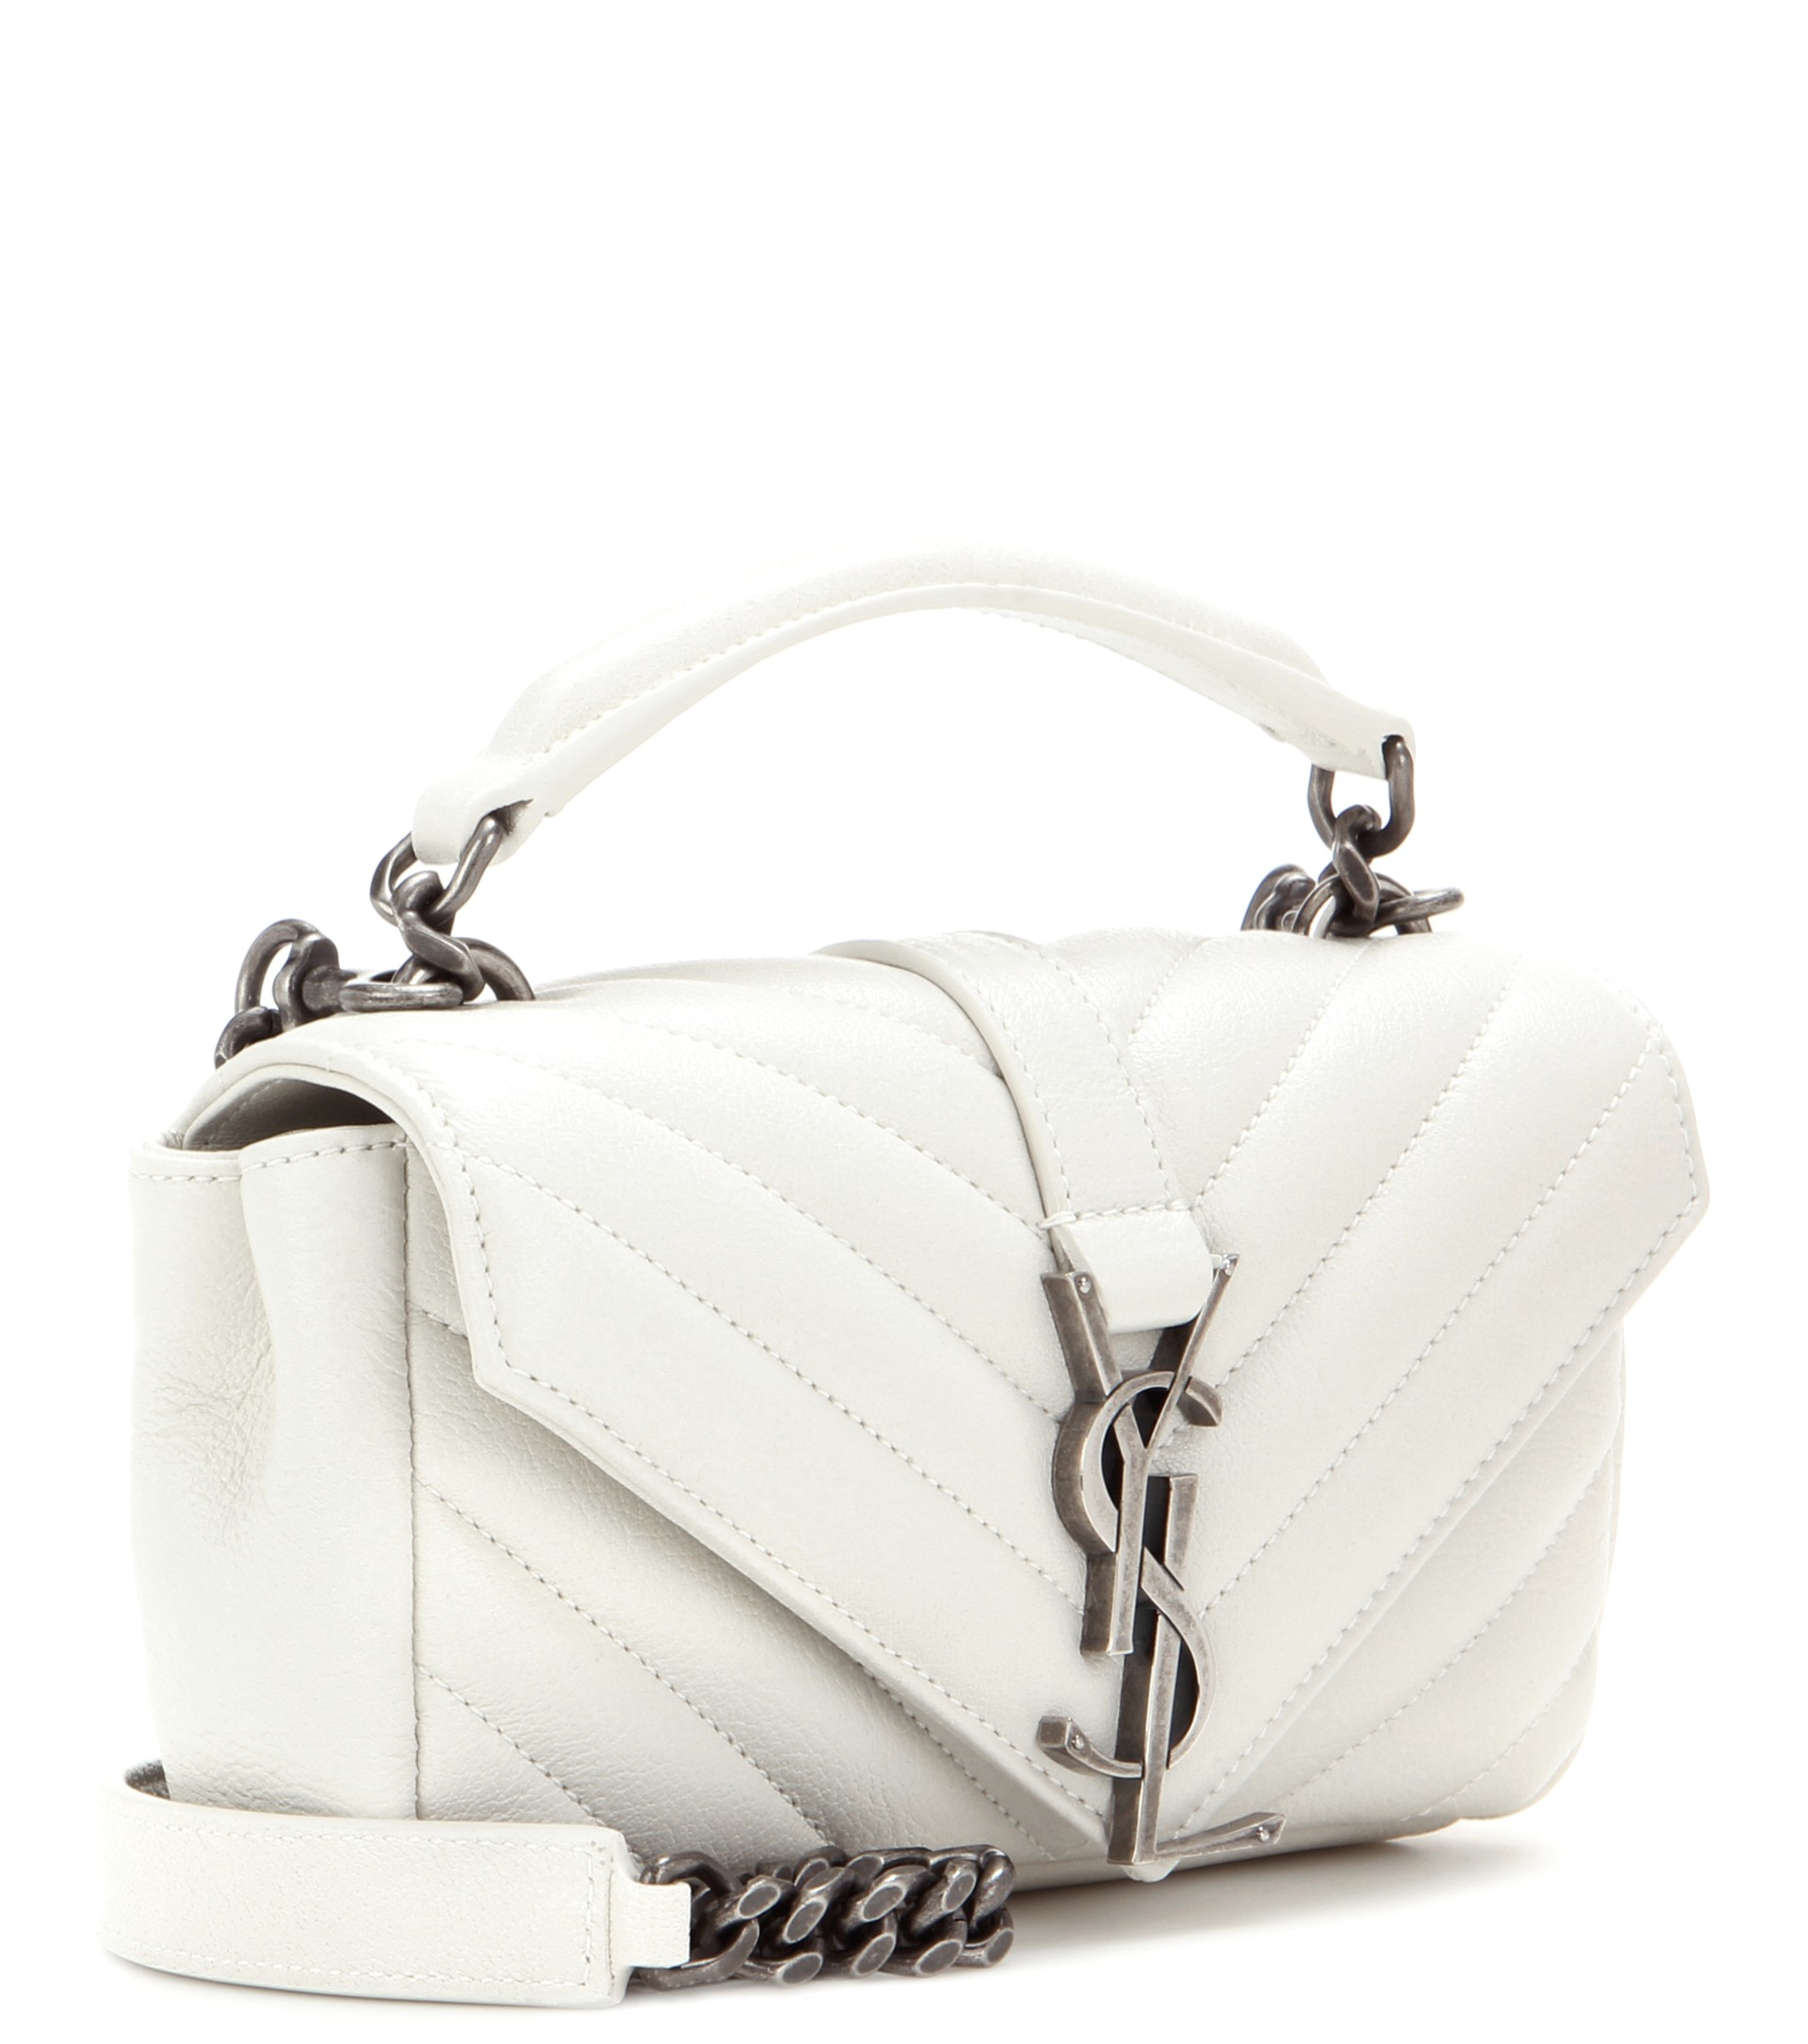 c85e3b3b8108 Lyst - Saint Laurent Monogram College Mini Quilted Leather Shoulder Bag in  White